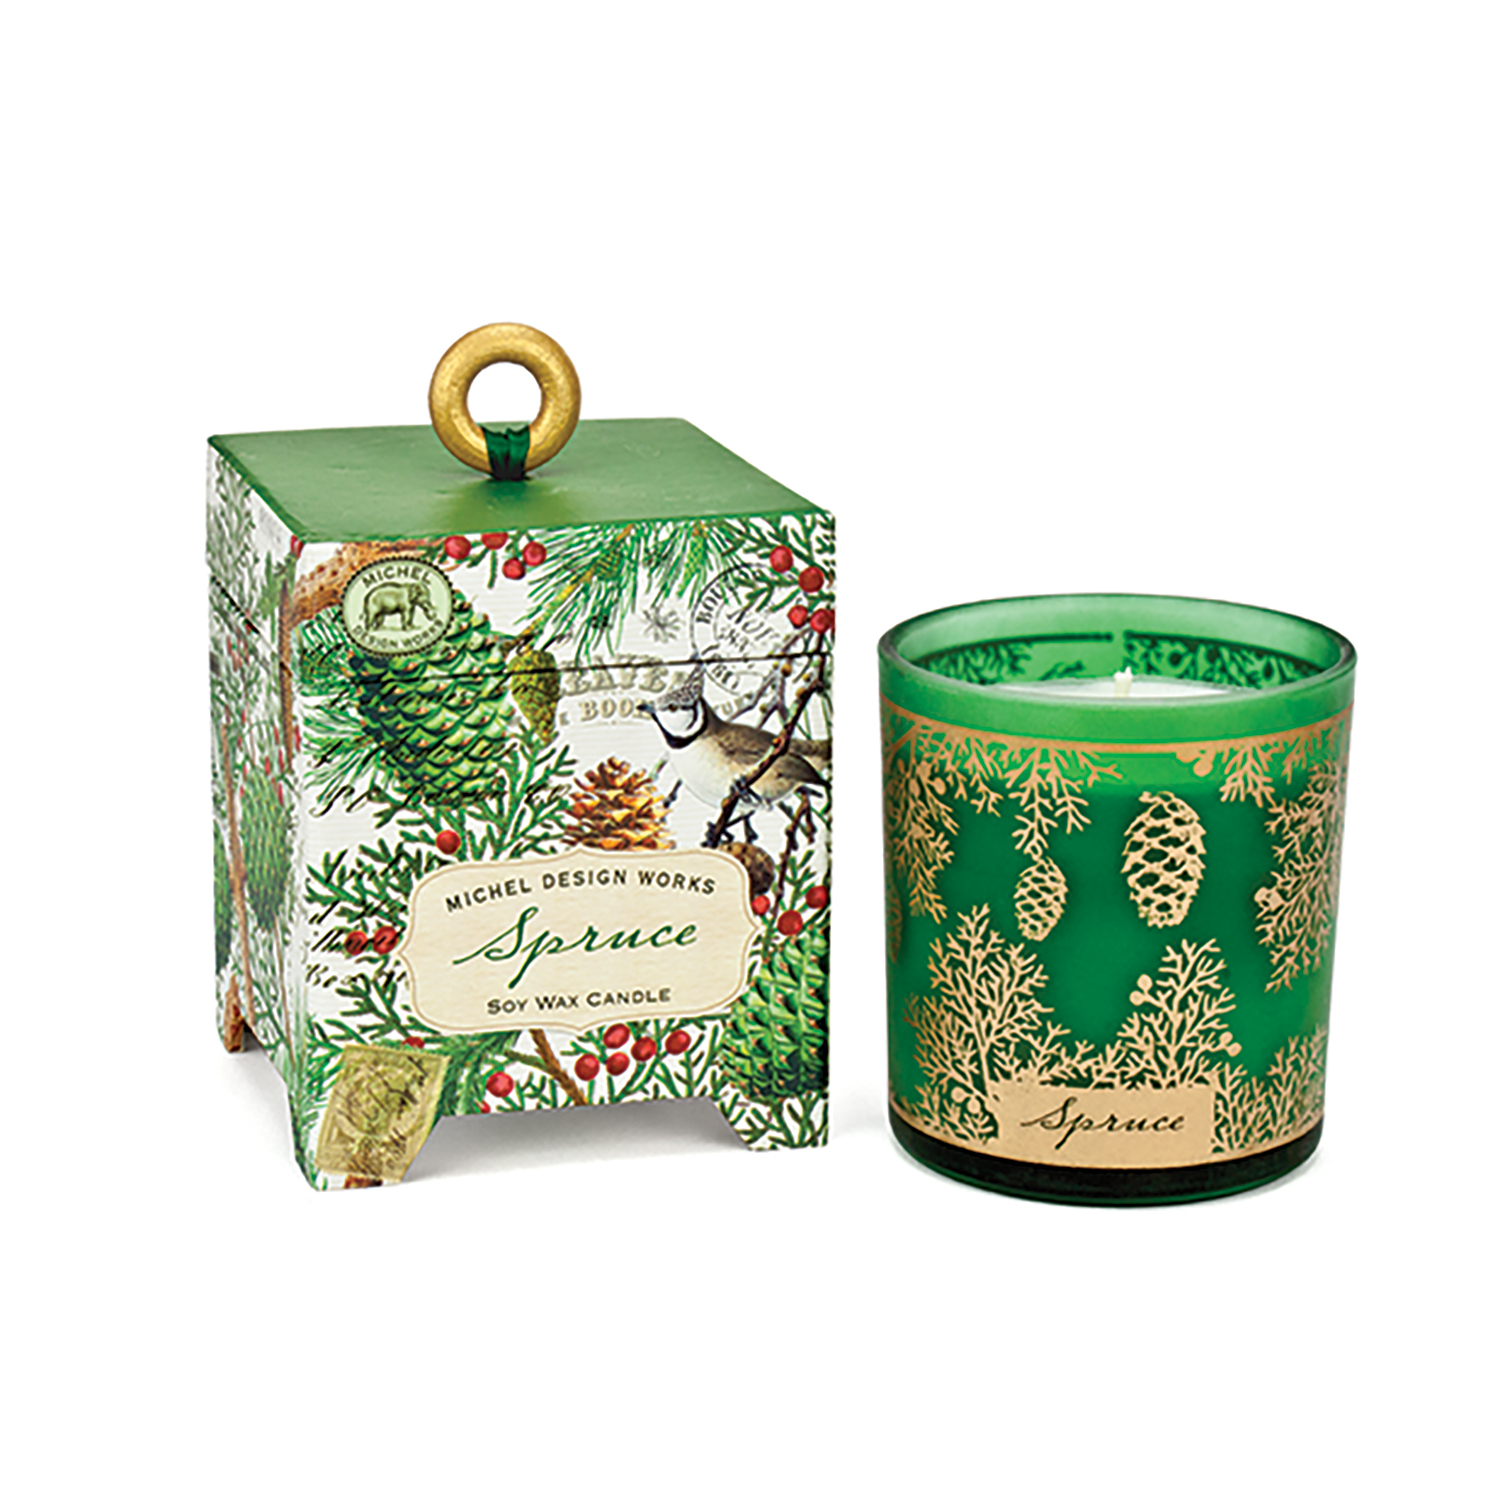 Spruce Soy Wax Candle